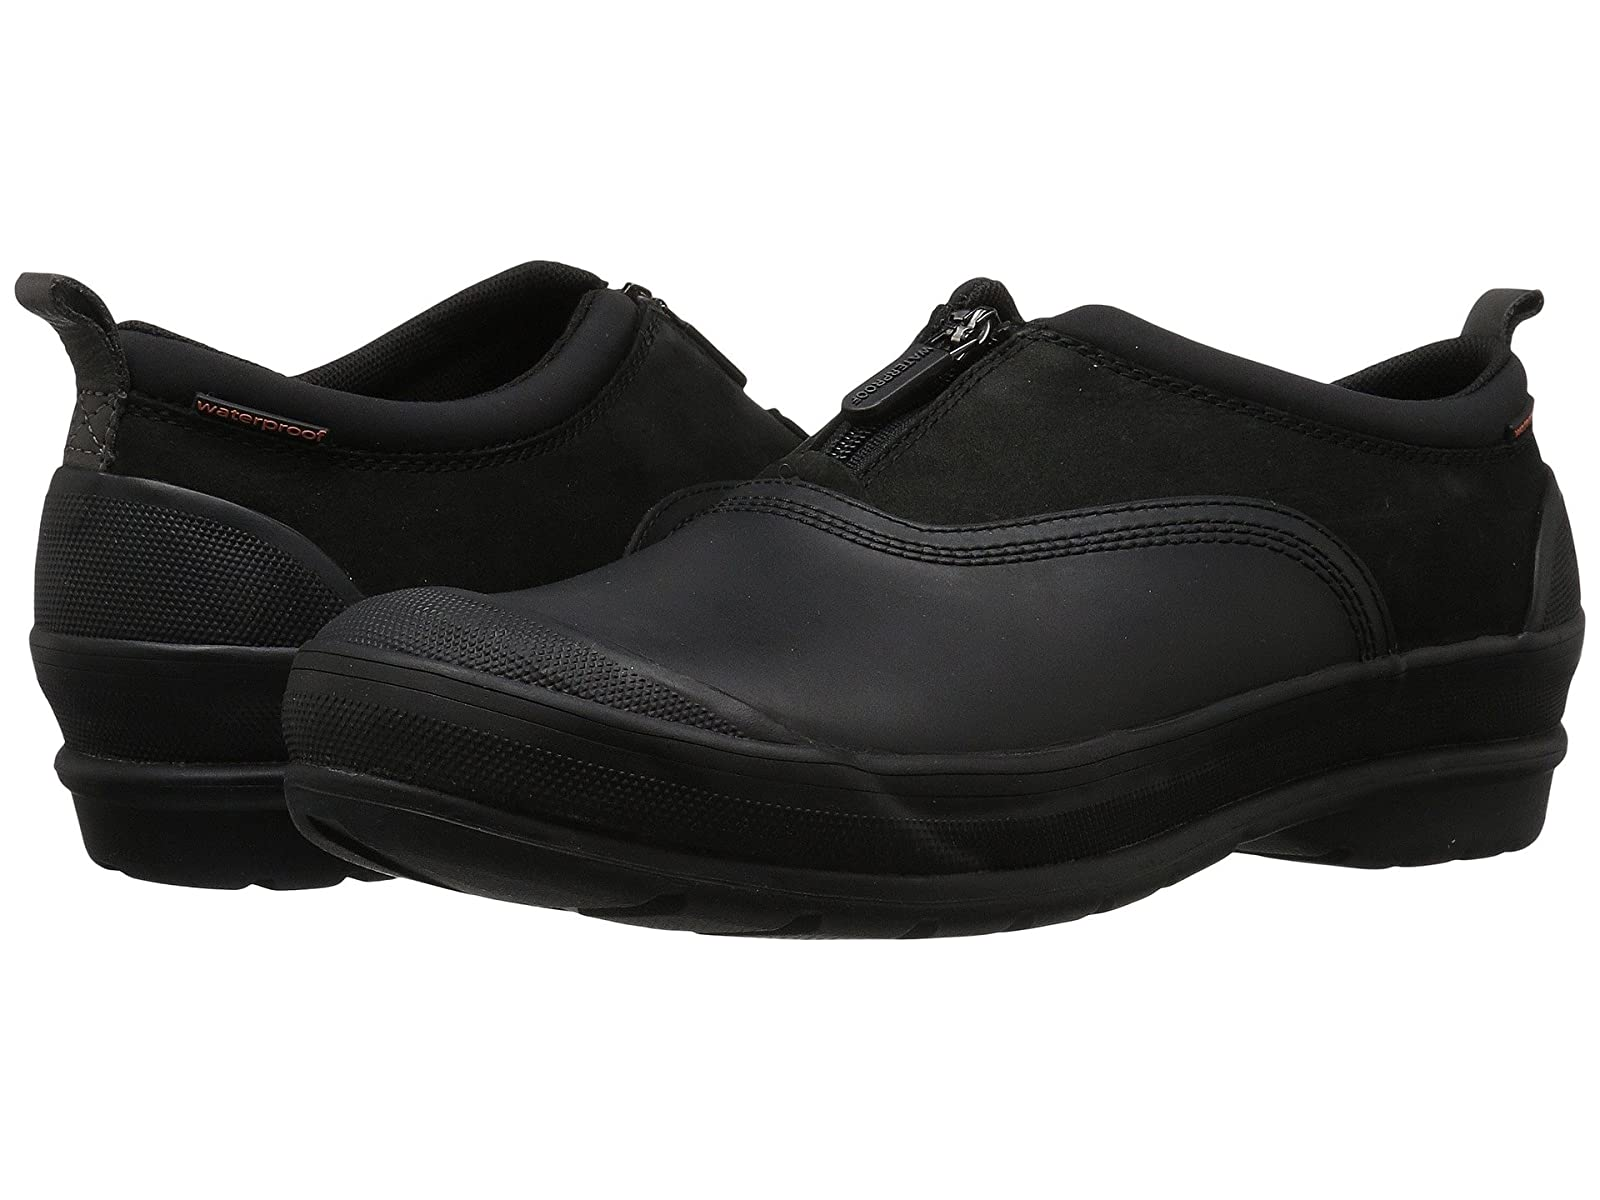 Clarks Muckers TrailCheap and distinctive eye-catching shoes